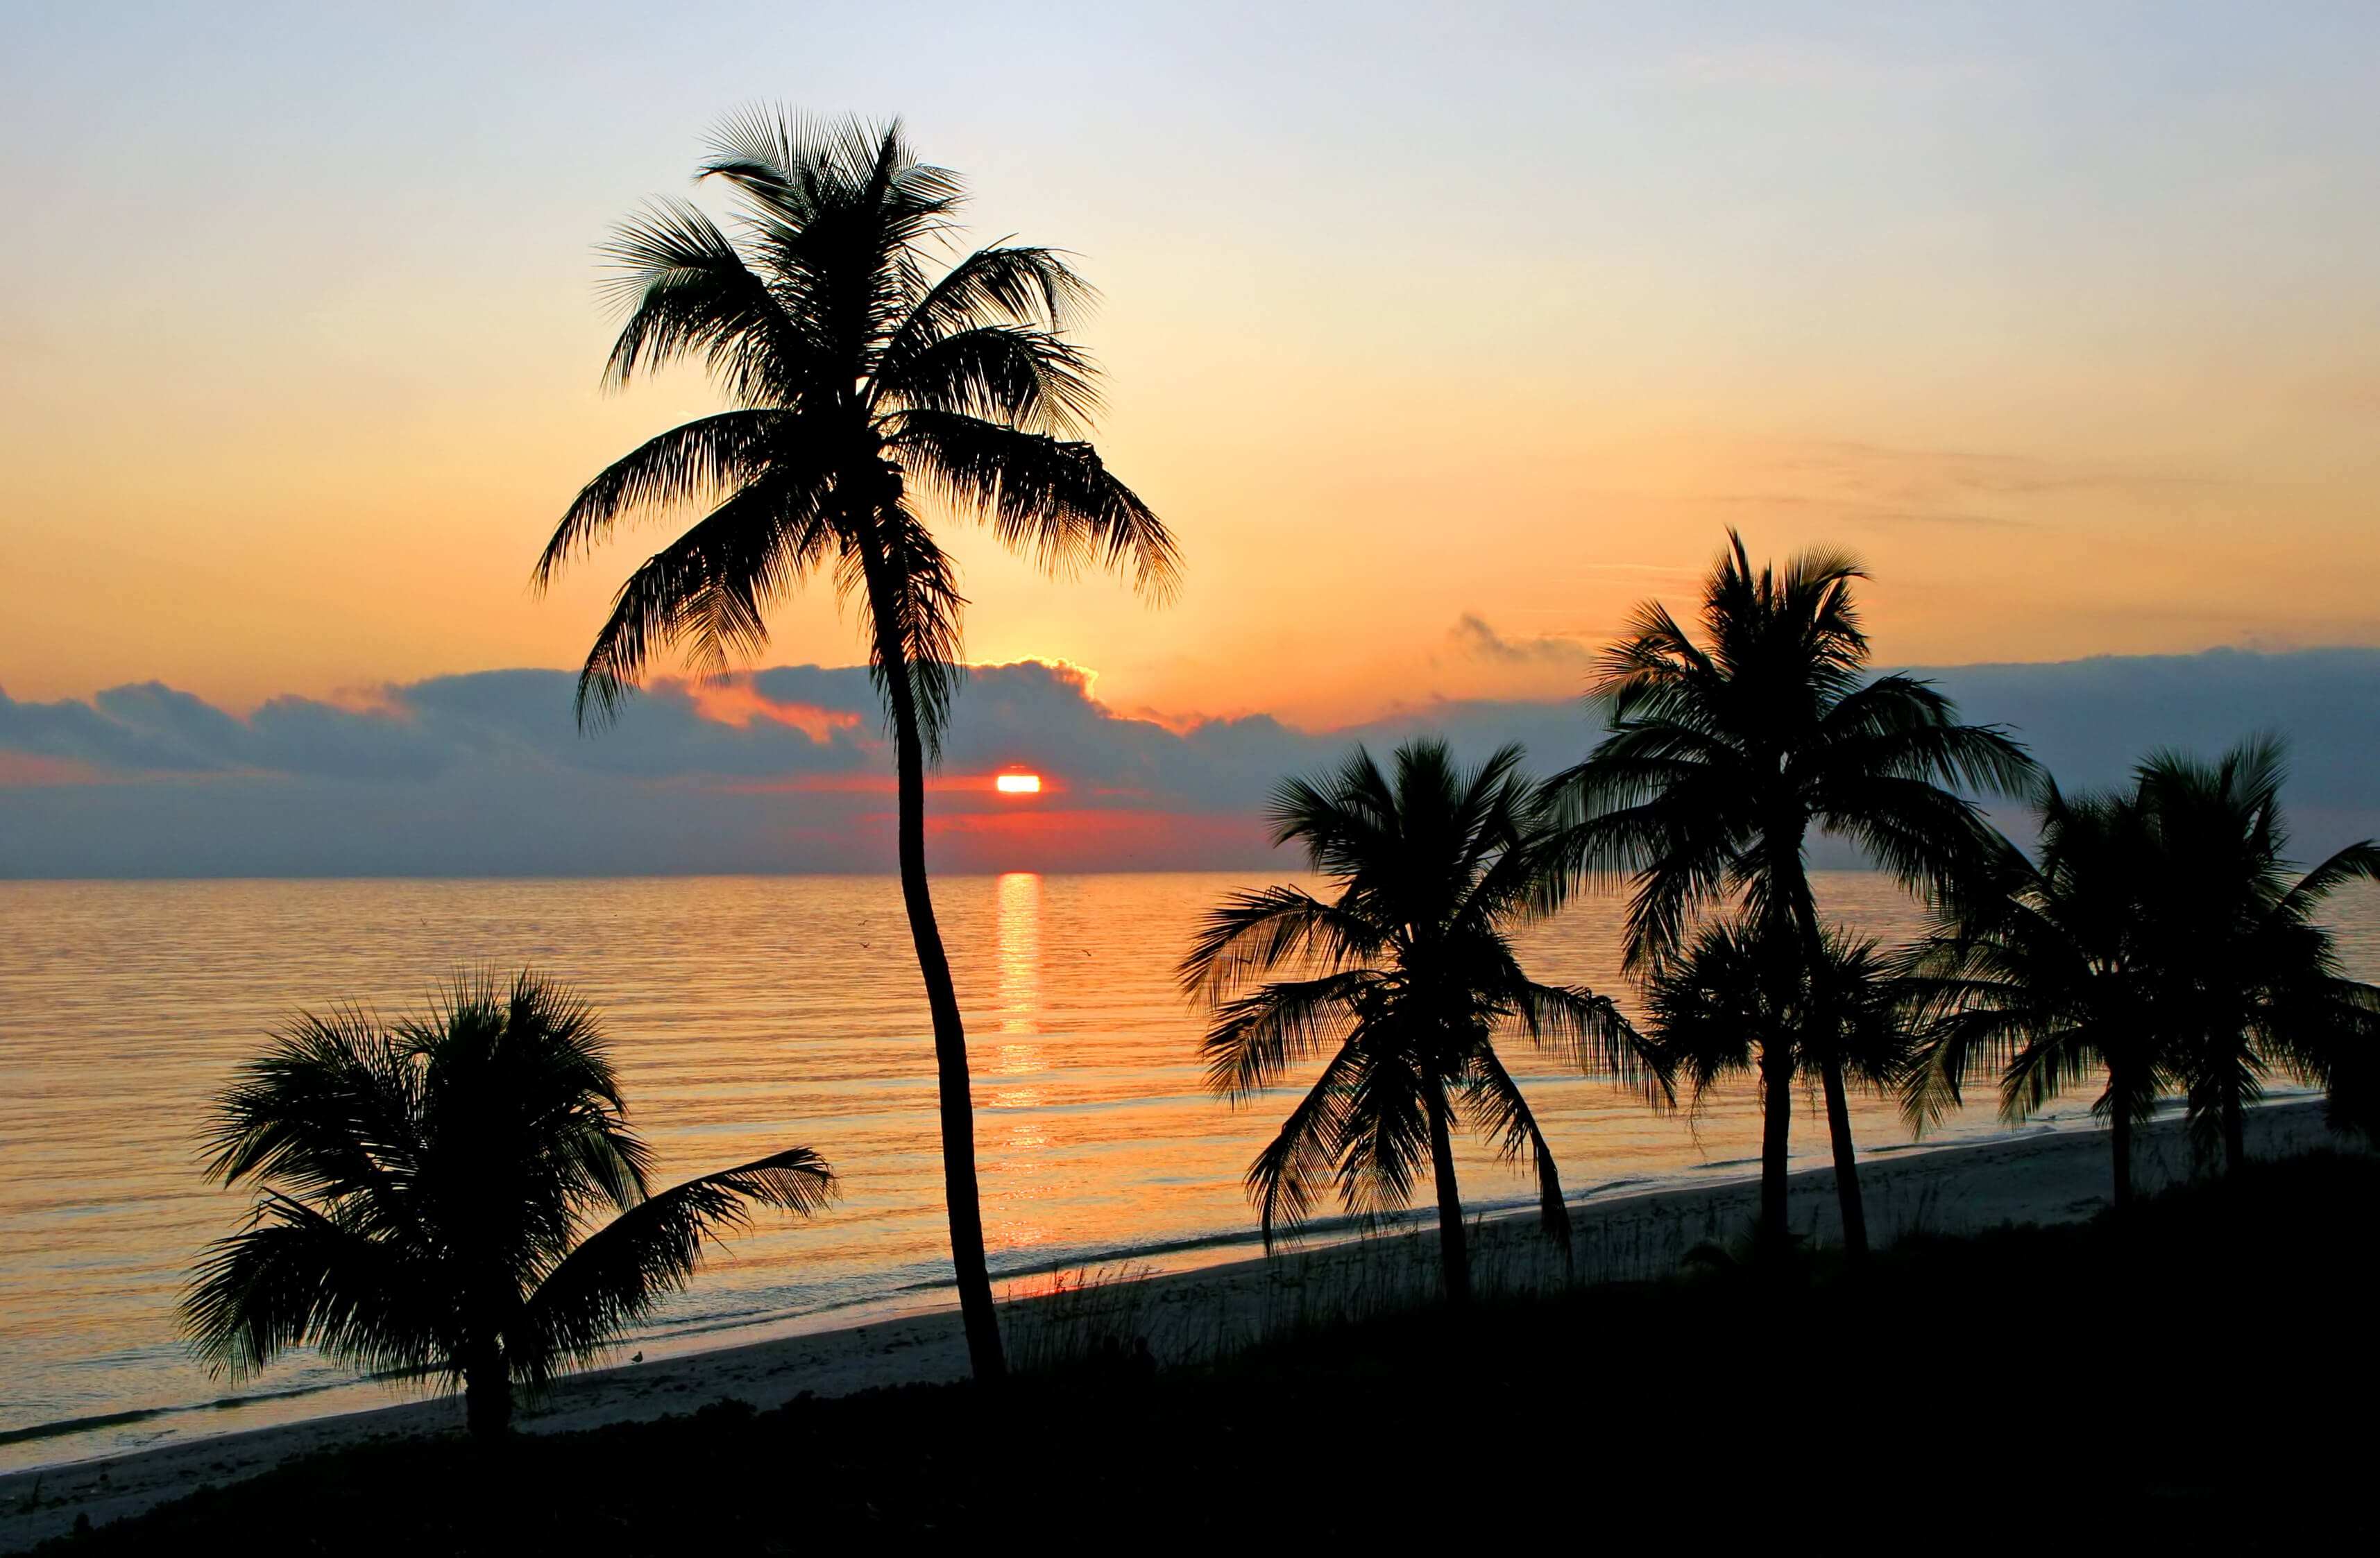 sunset at sanibel island florida